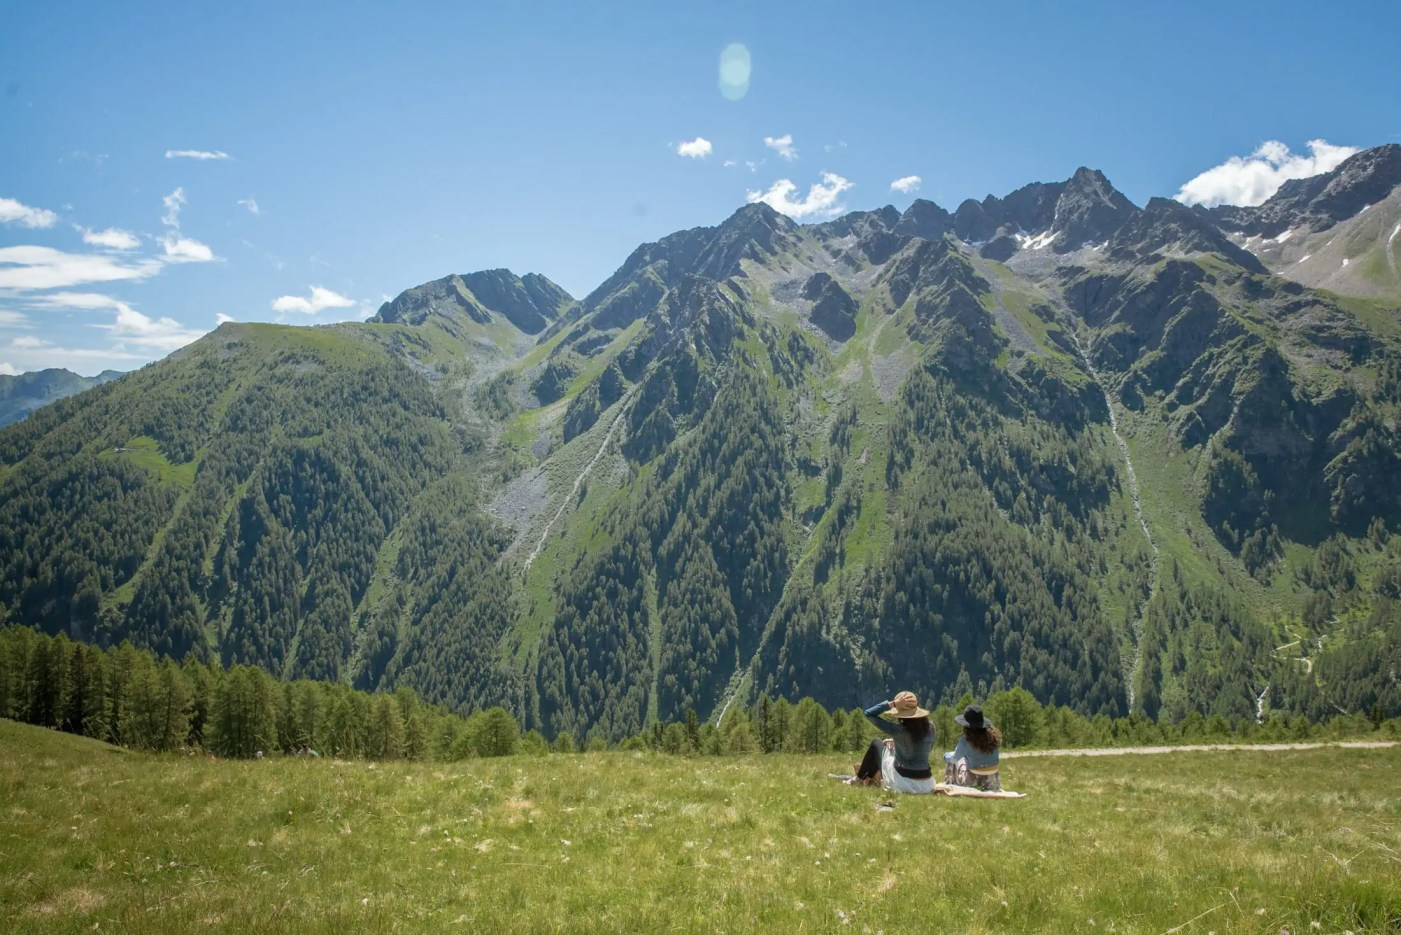 Stills from the shooting of Val di Sole 2017 travel video campaign